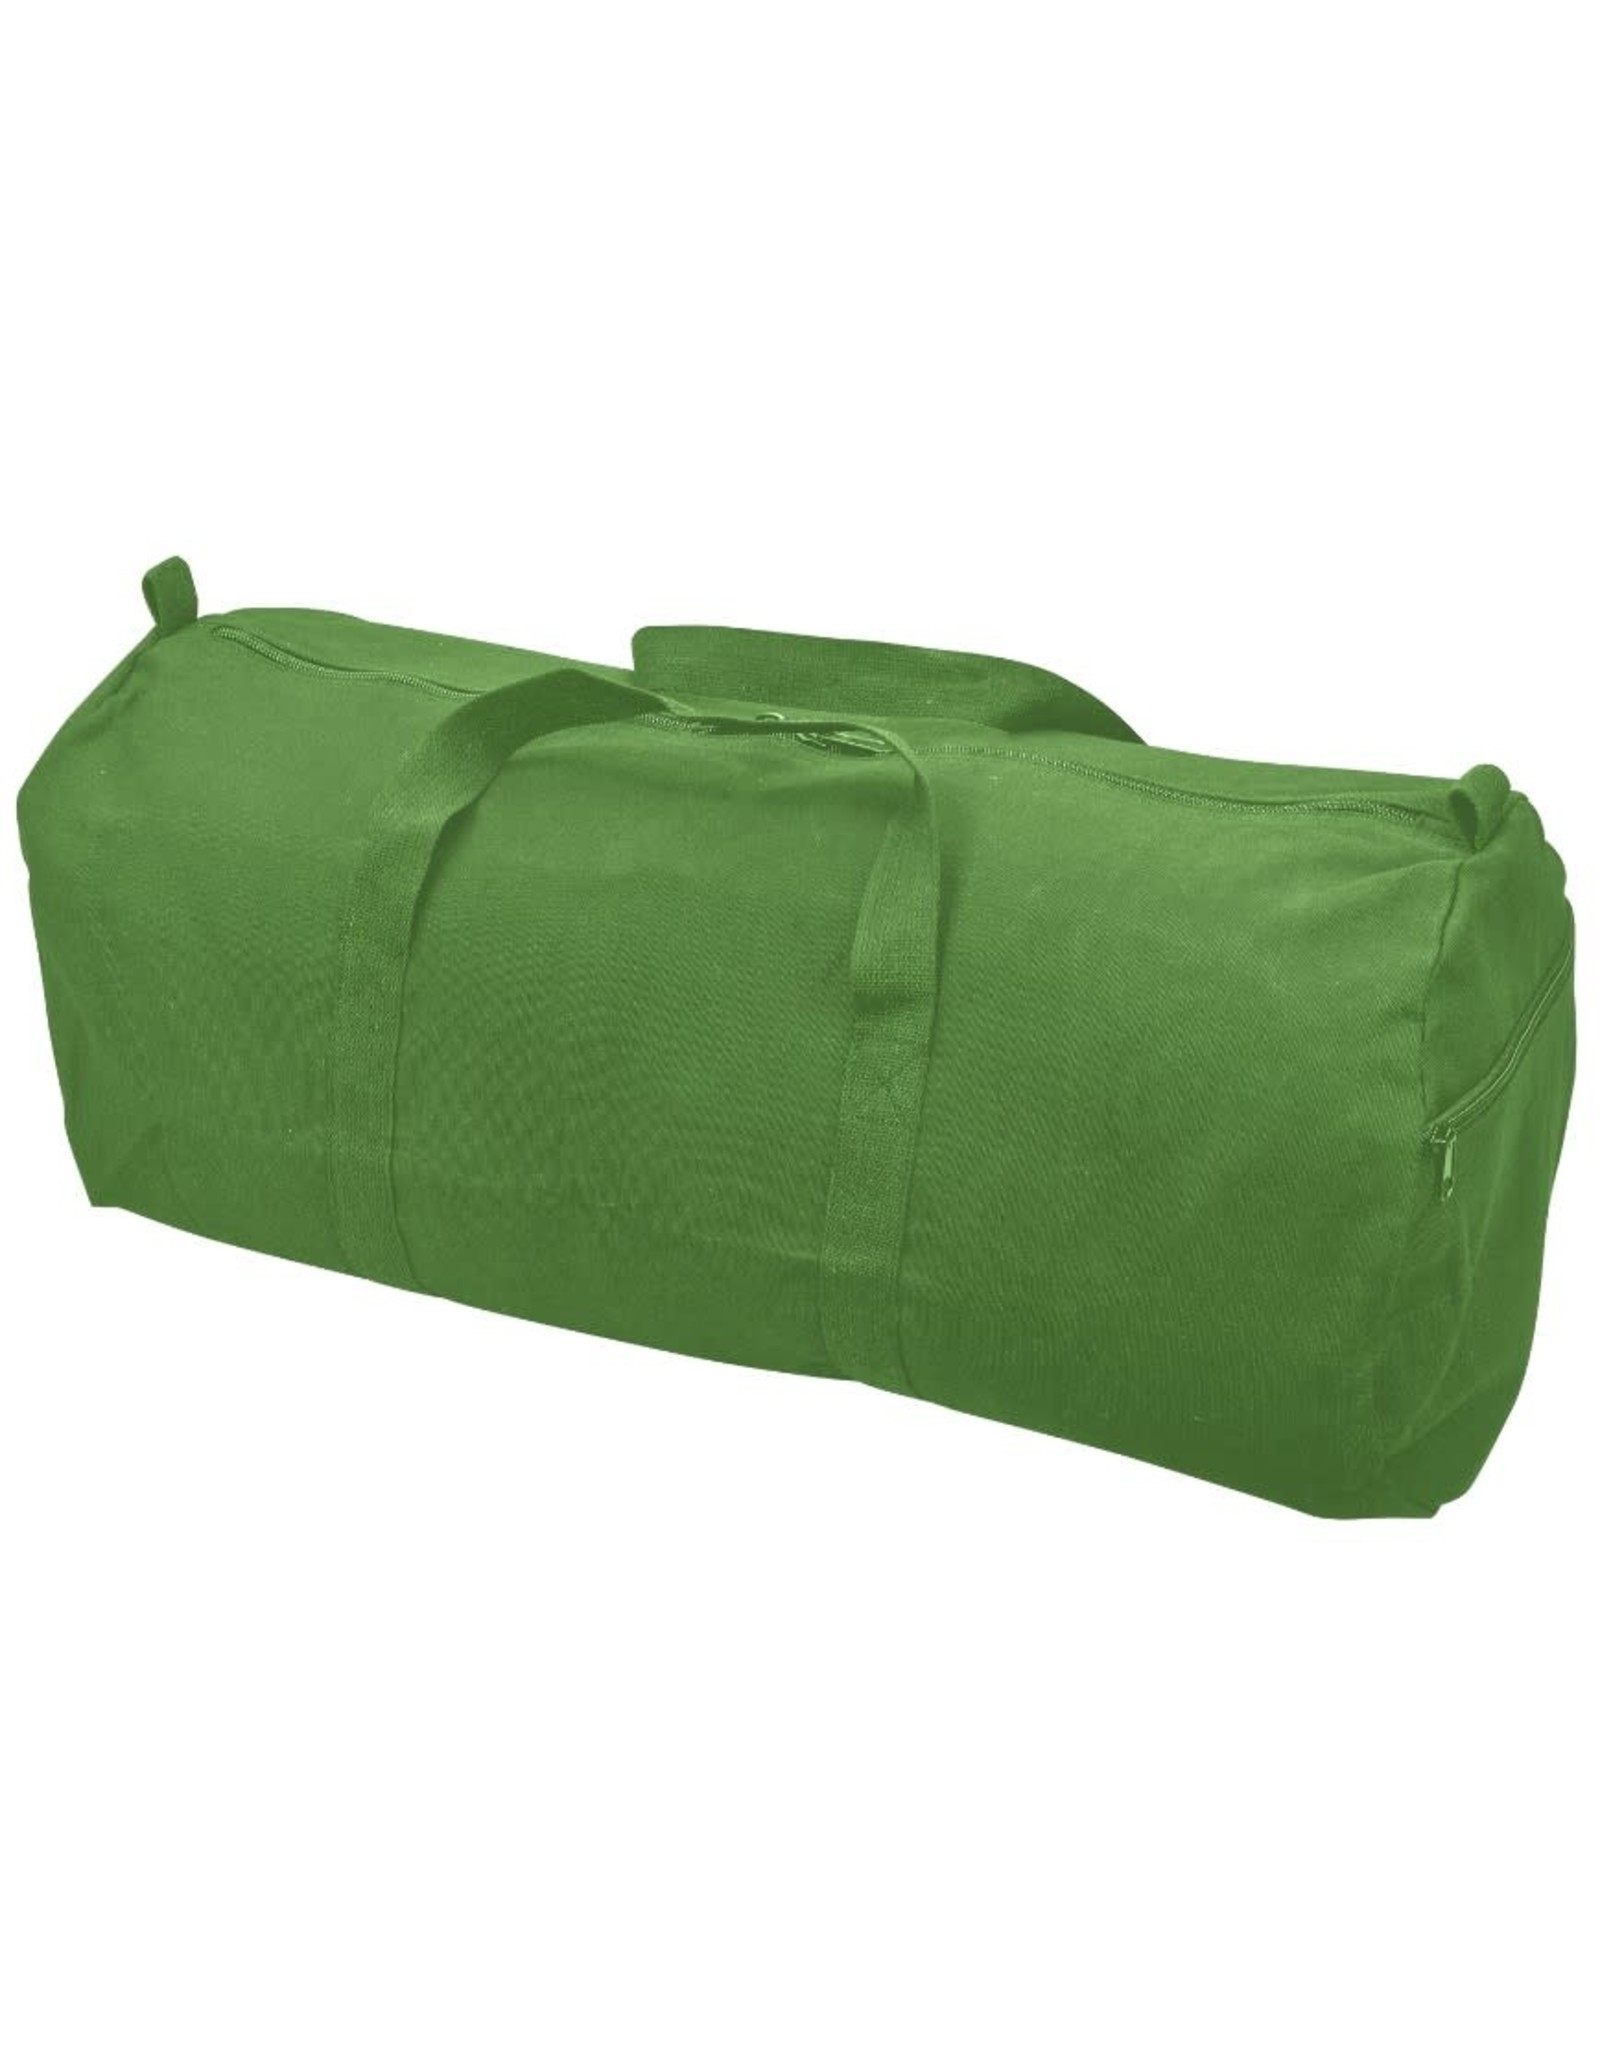 Kookaburra Heavy Duty Canvas Gear Bag